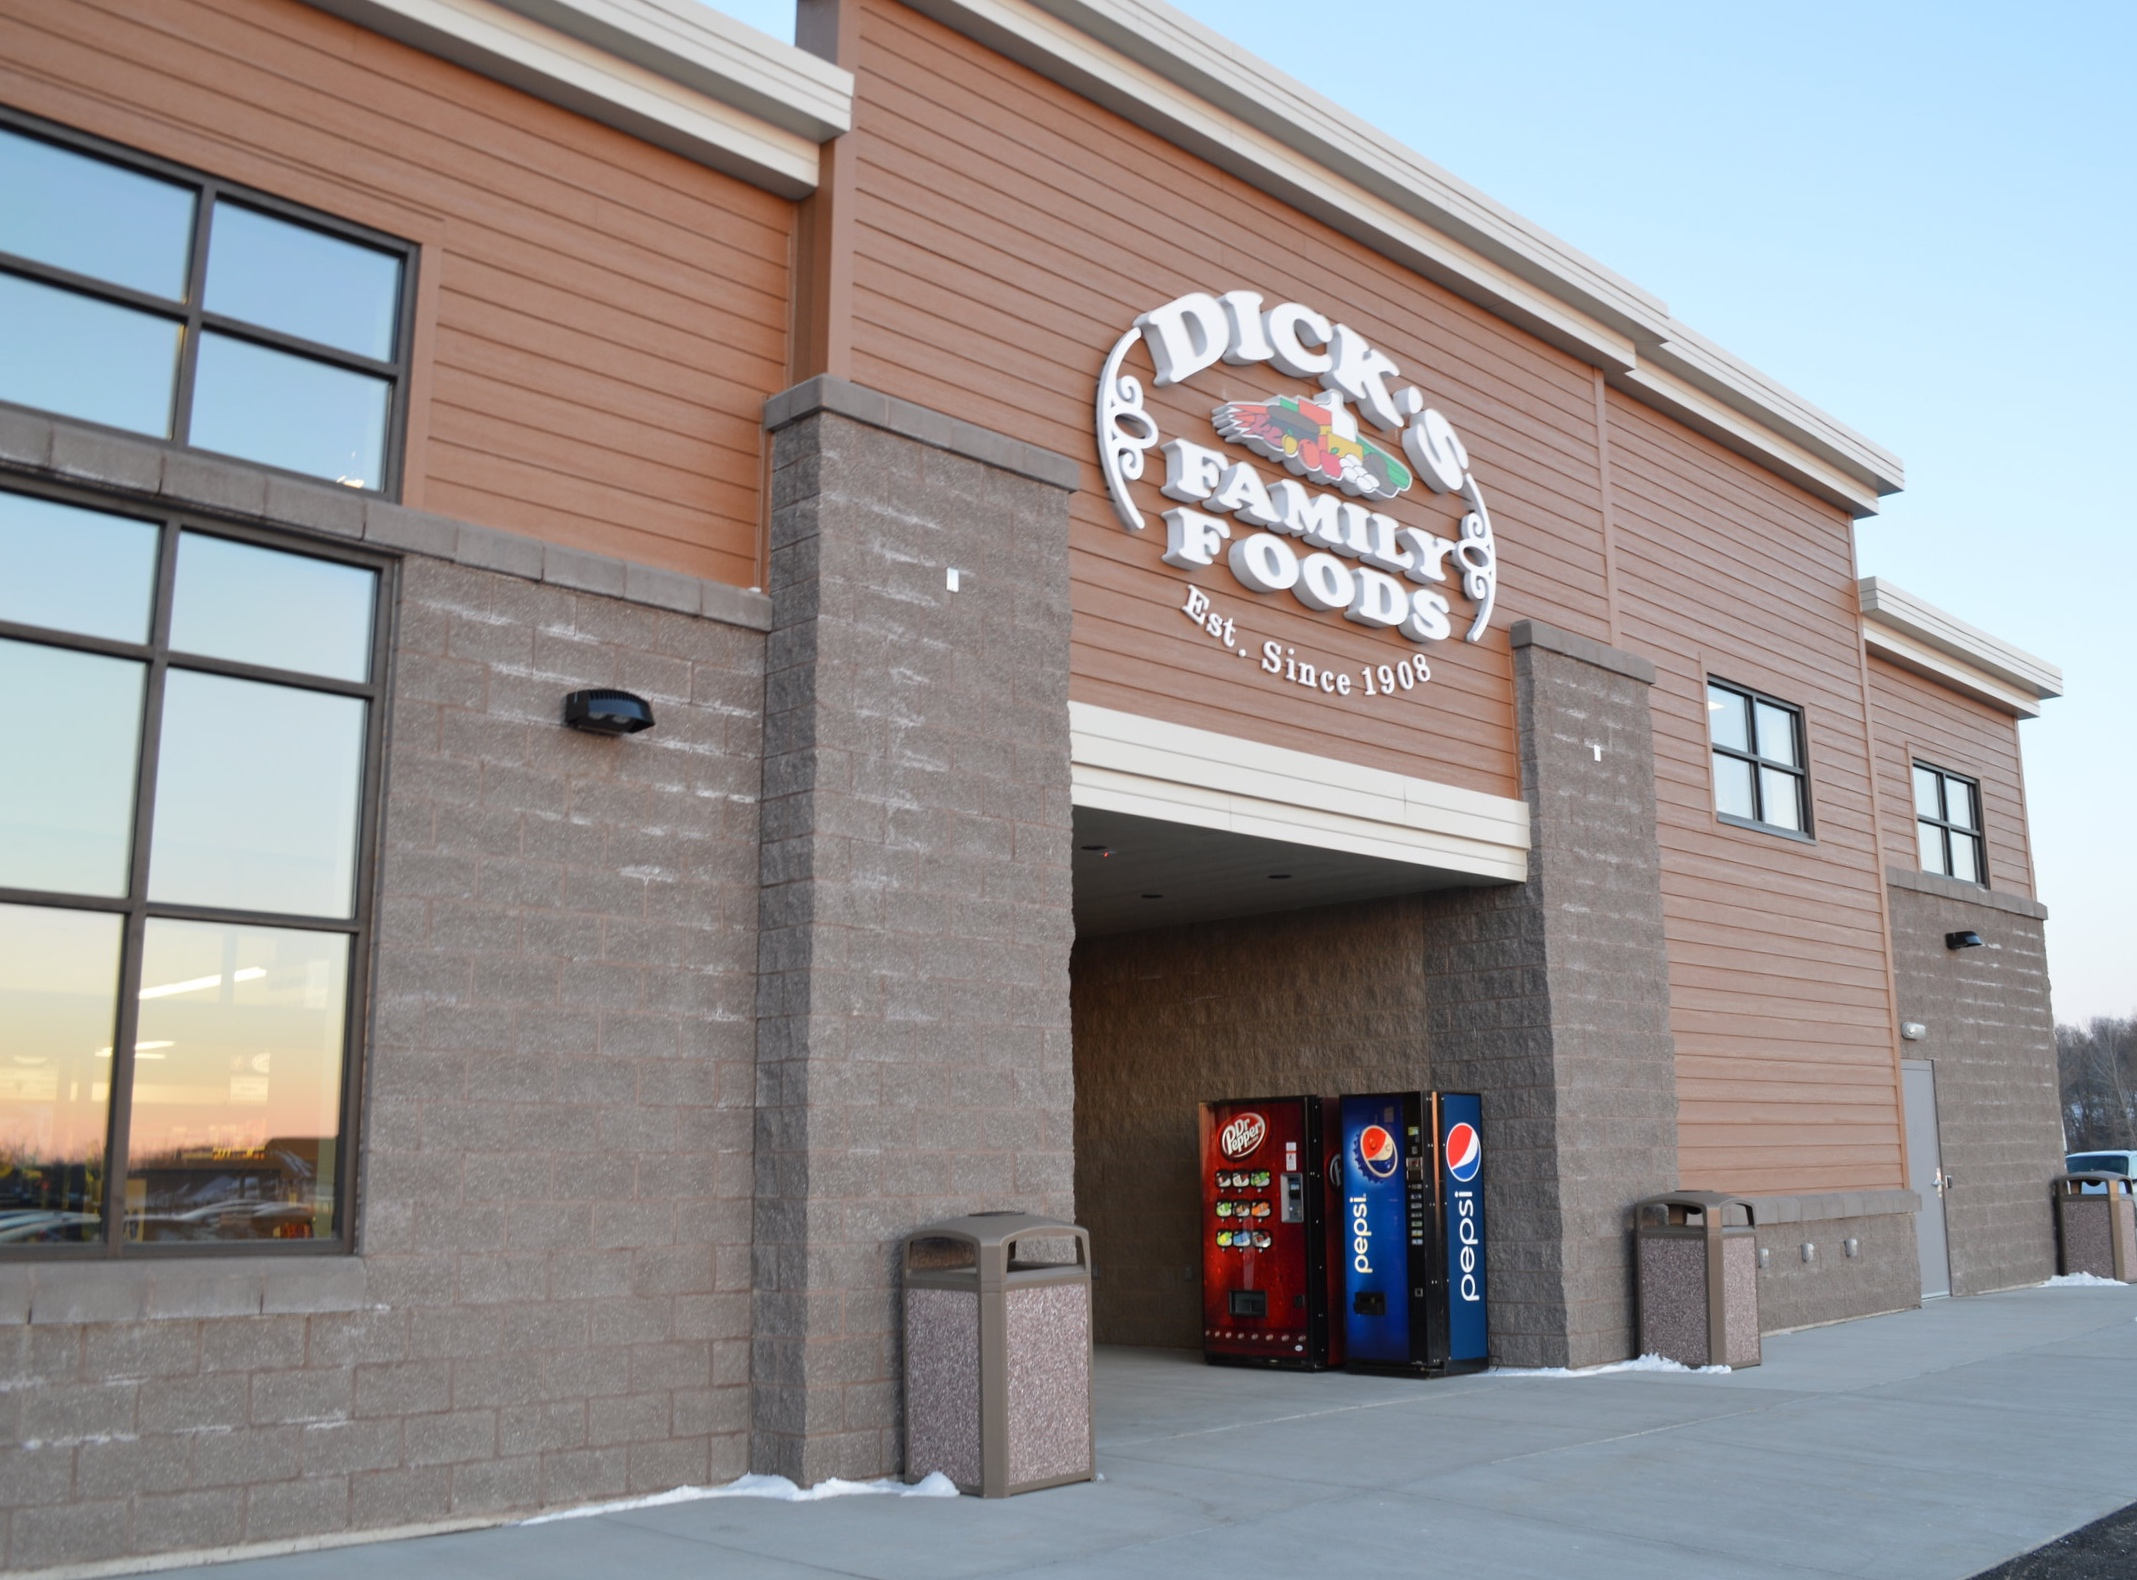 DICK'S FAMILY FOODS - SHERWOOD, WISCONSIN